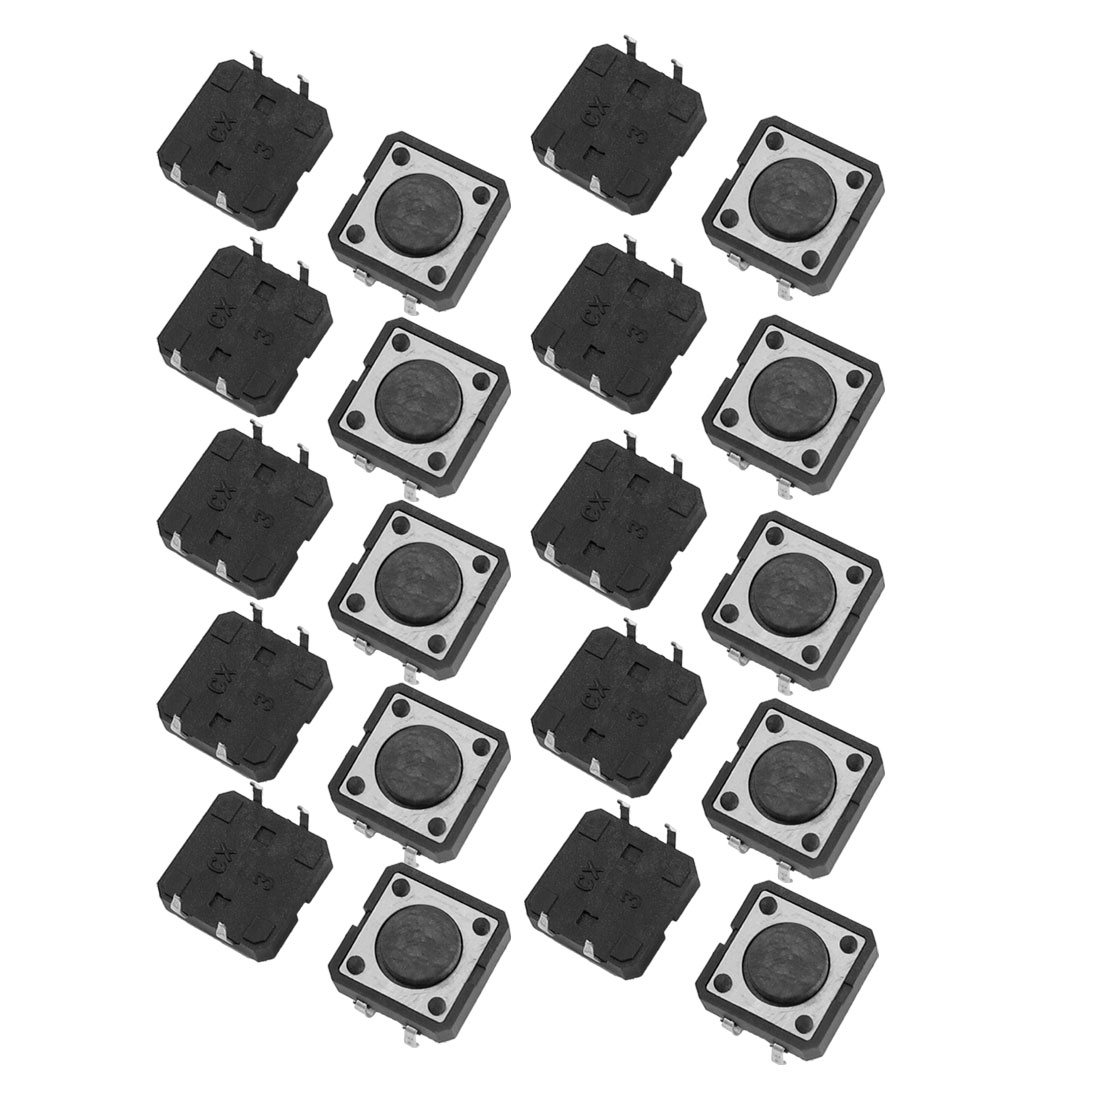 20 Pcs 12x12x4.3mm PCB Momentary Tact Push Button Switch 4 Pin DIP